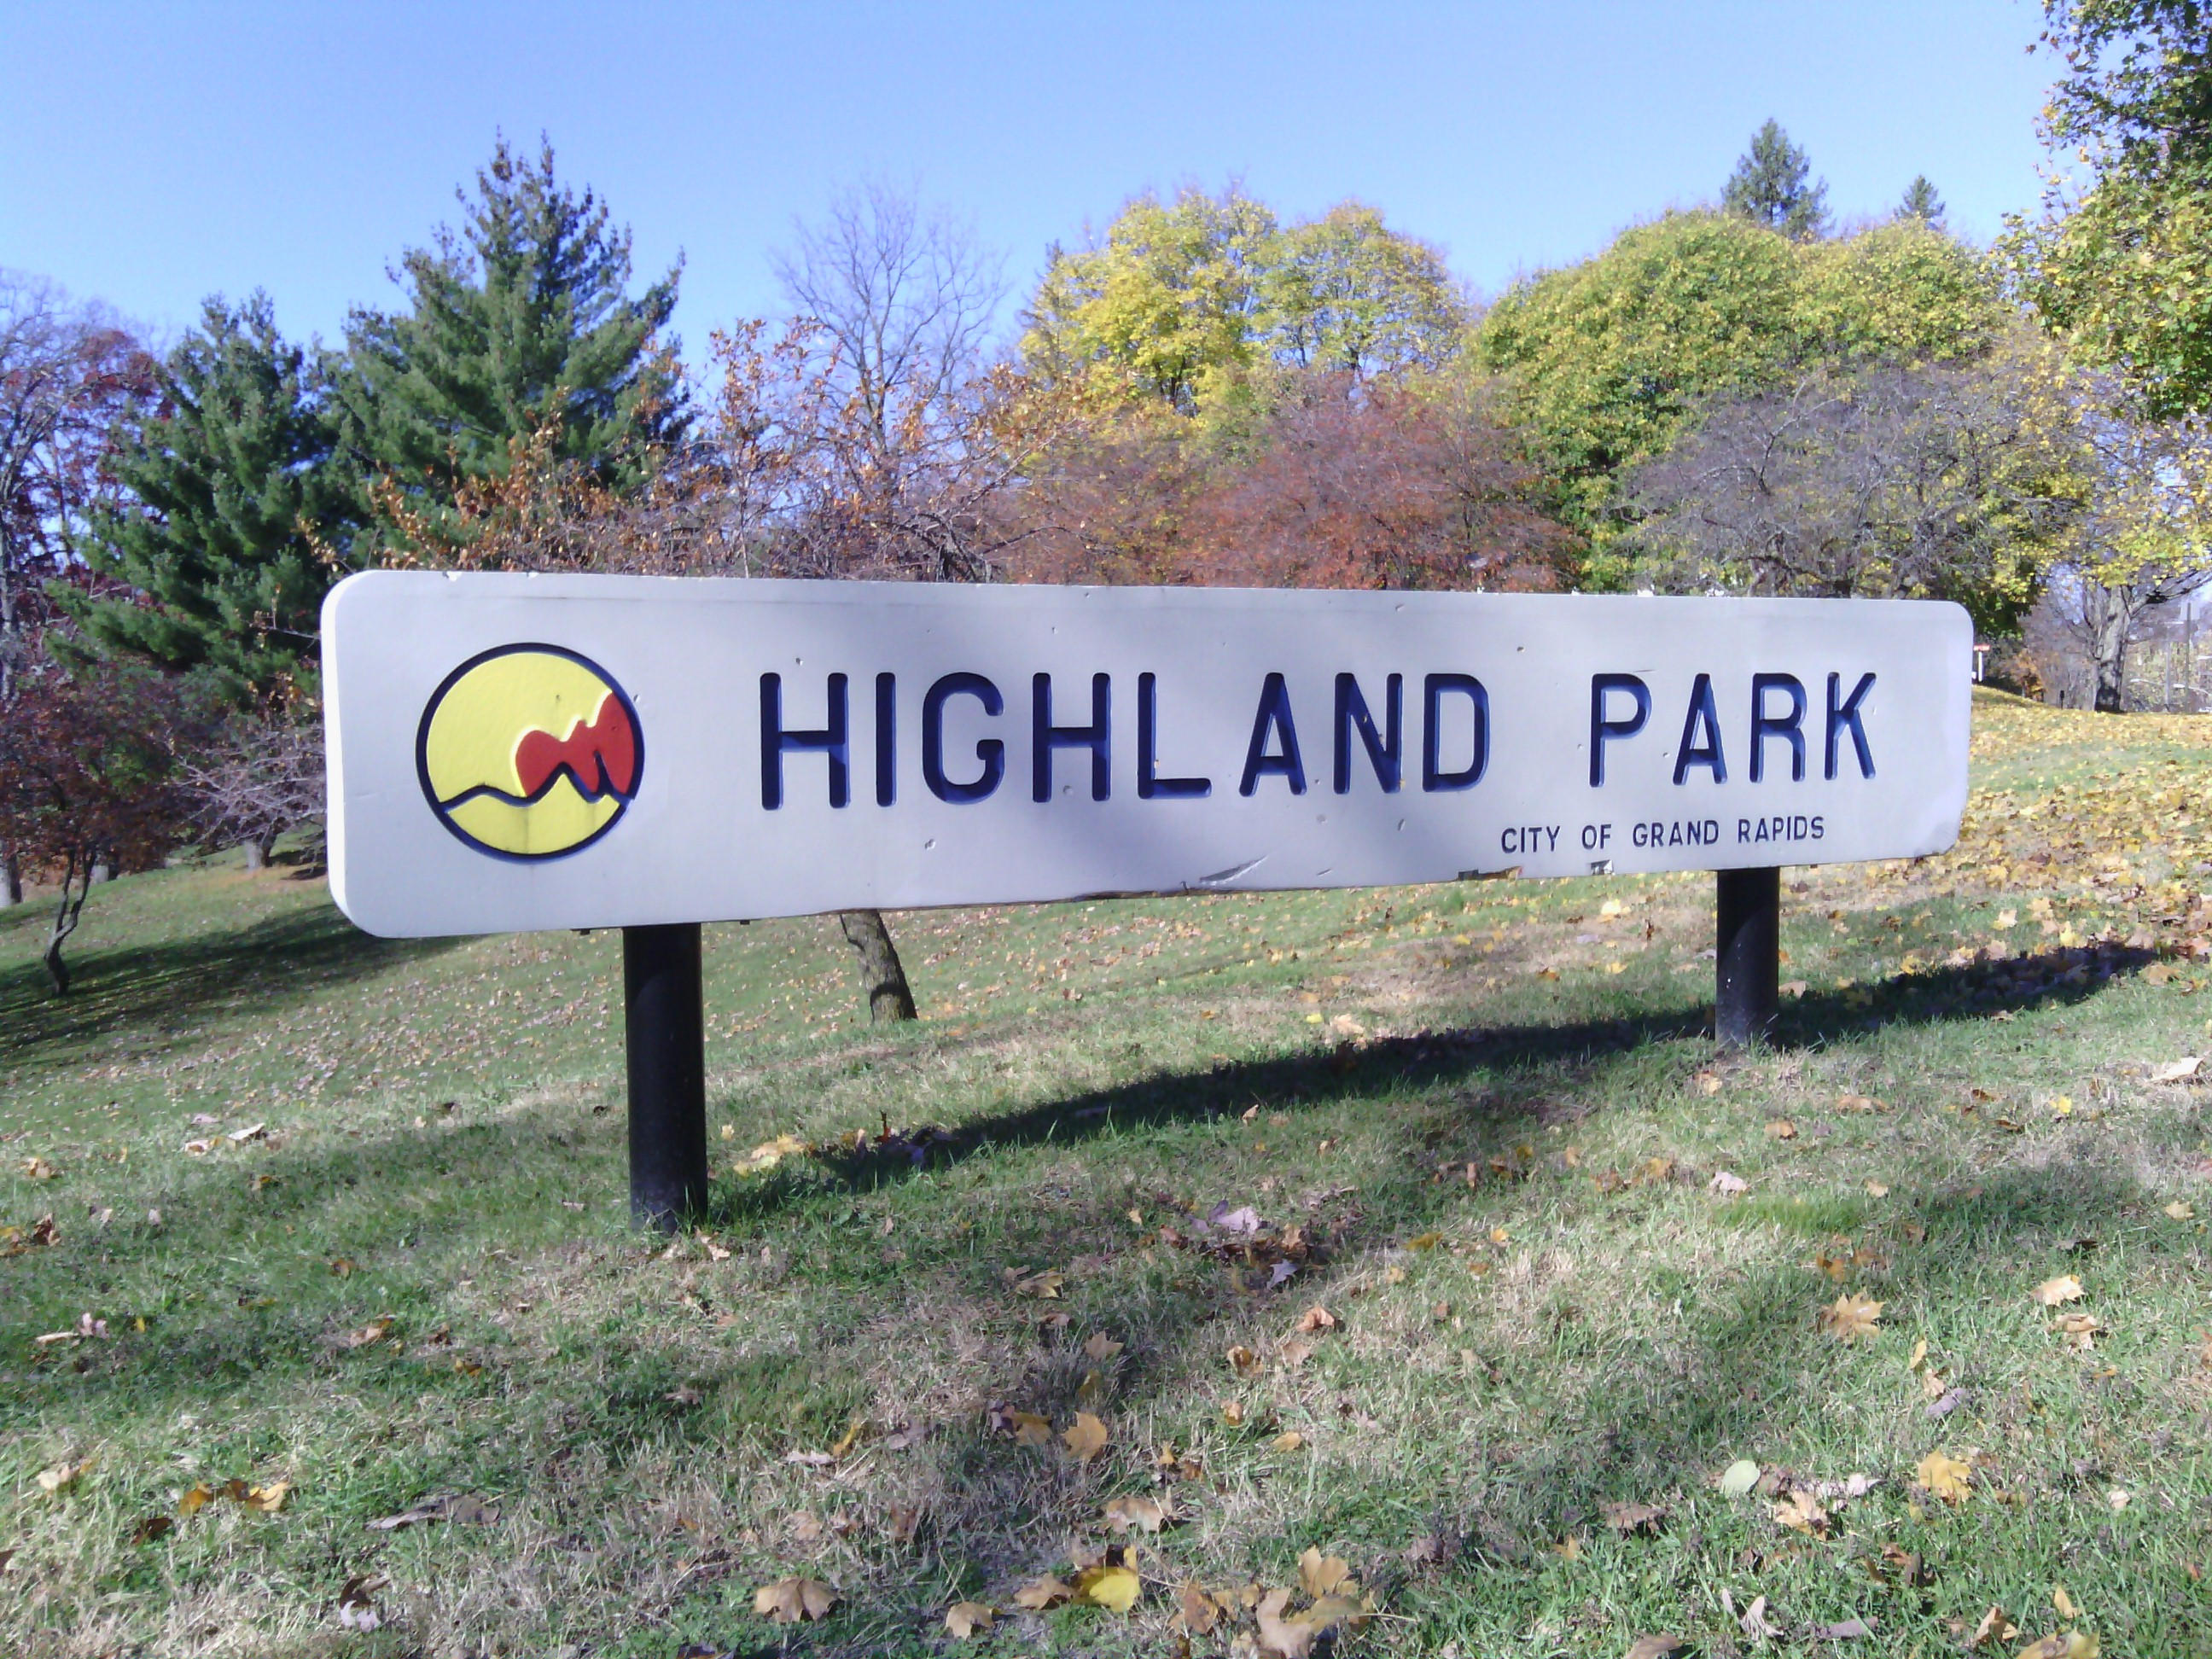 Sign at the entrance of Highland Park, Grand Rapids, MI